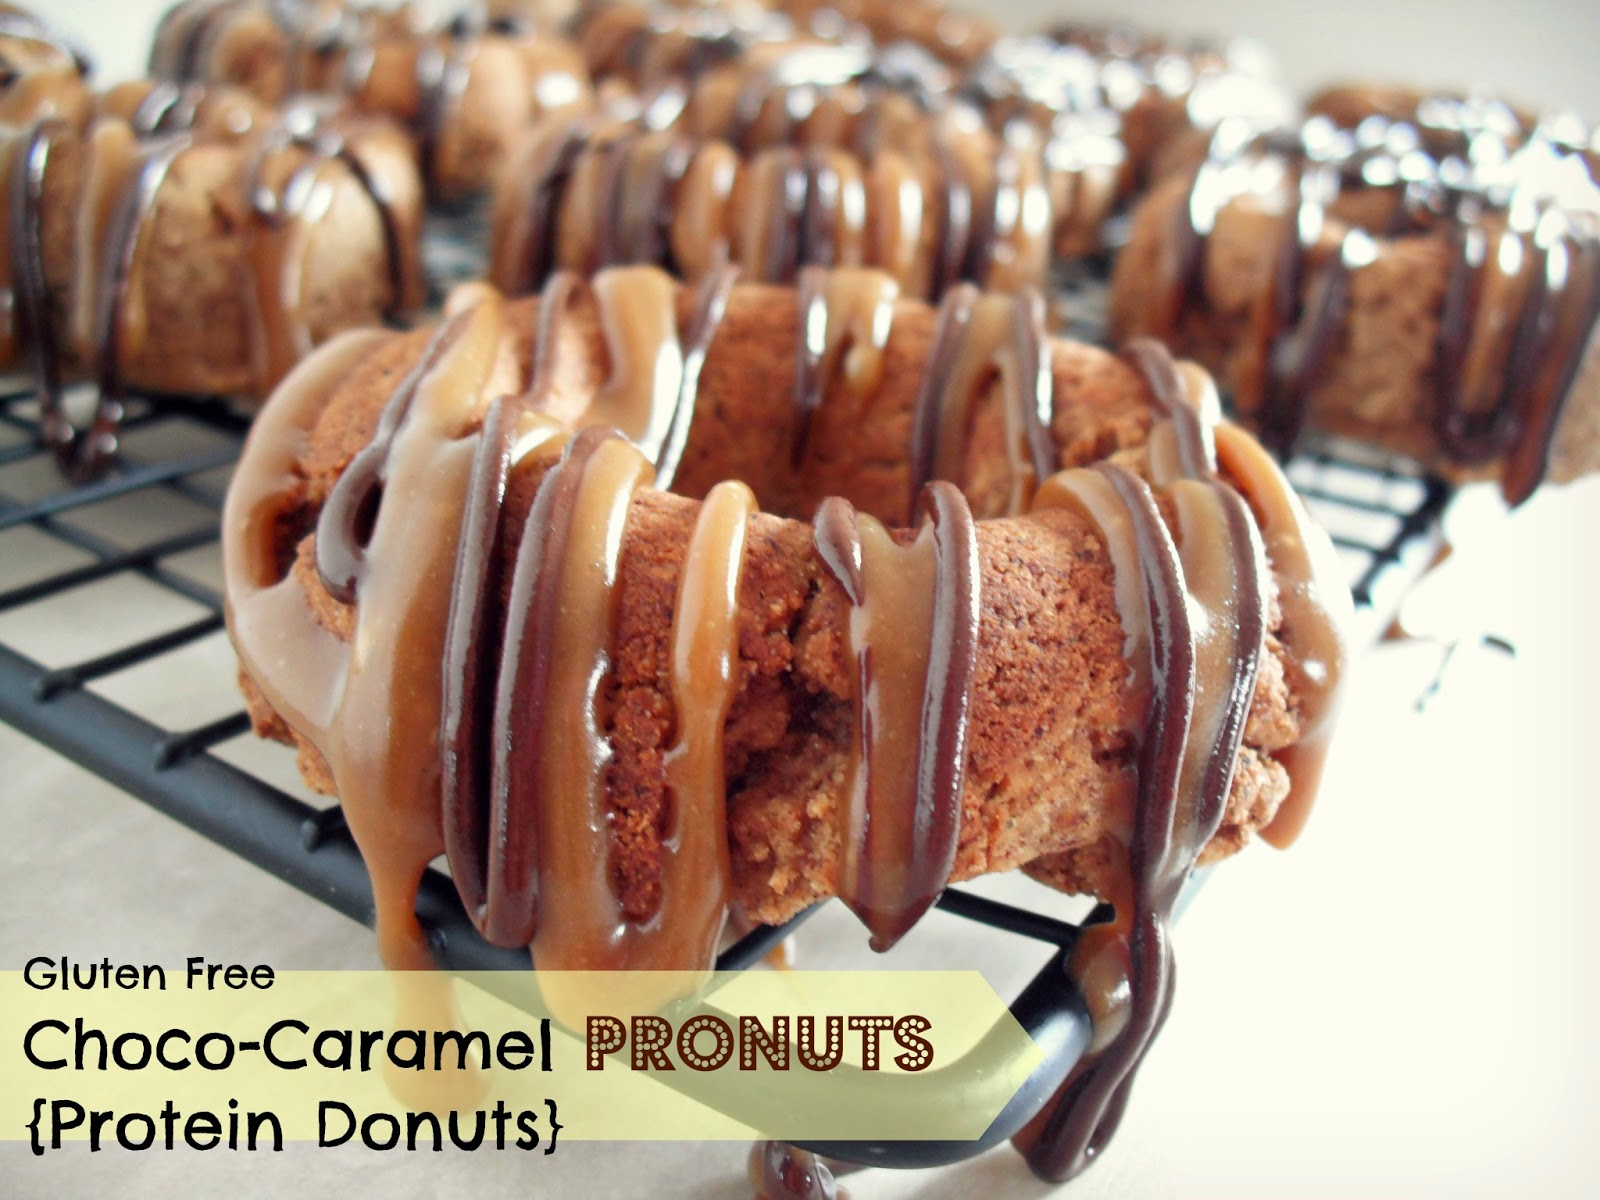 Why The Pronut Should Be Your Next Healthy Obsession In2016 pics